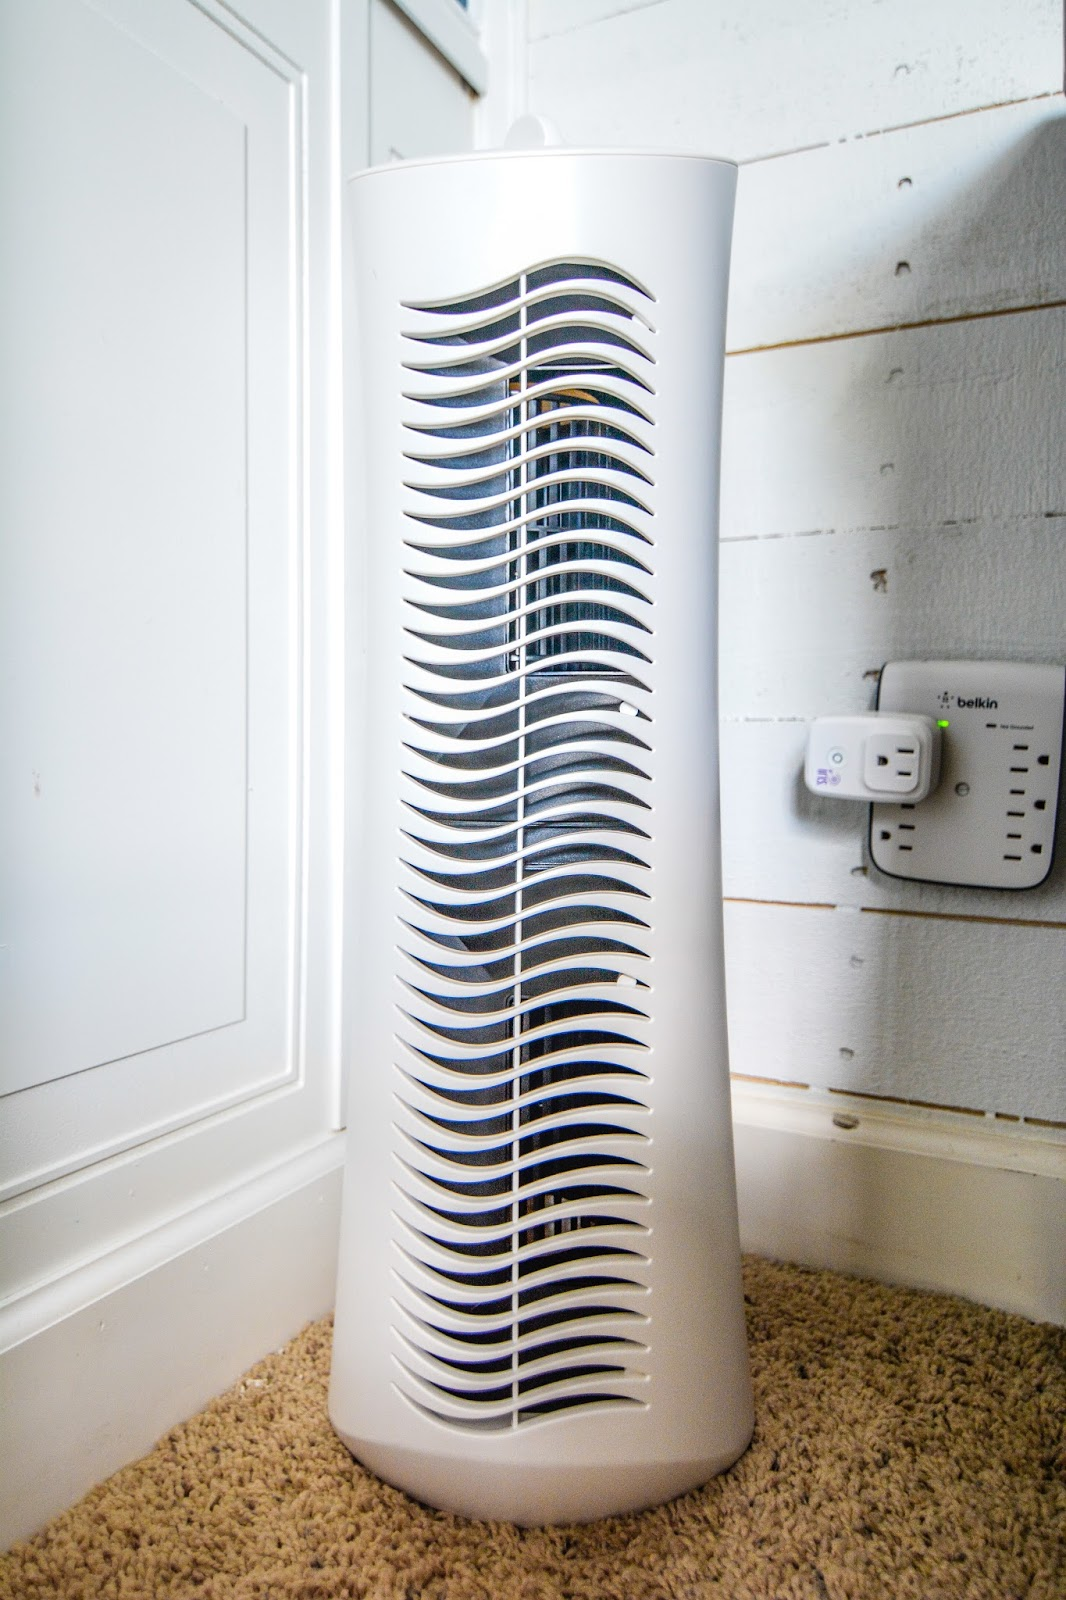 Febreze Tower Air Purifier